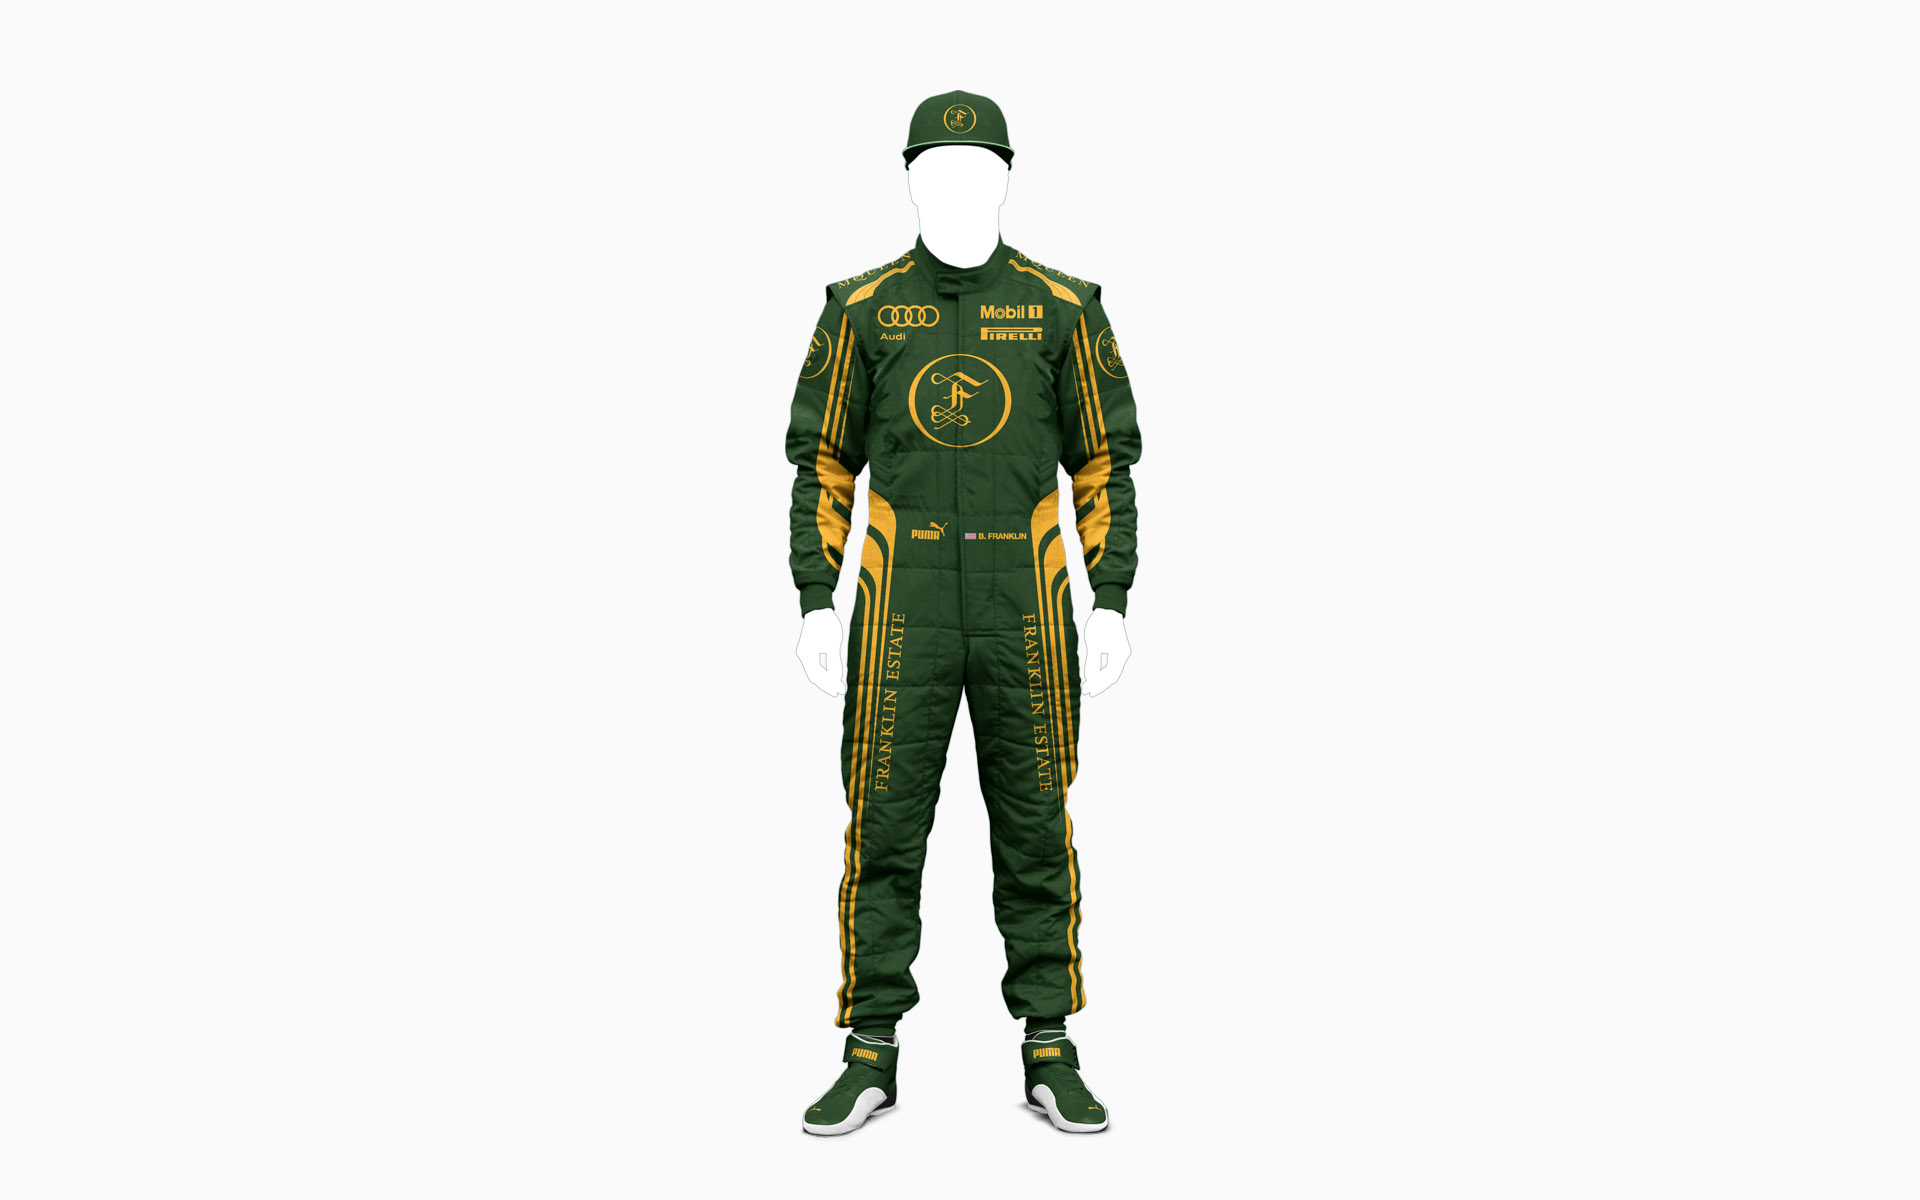 Franklin Estate Vineyards Reserve F1 Driver Firesuit Visualization